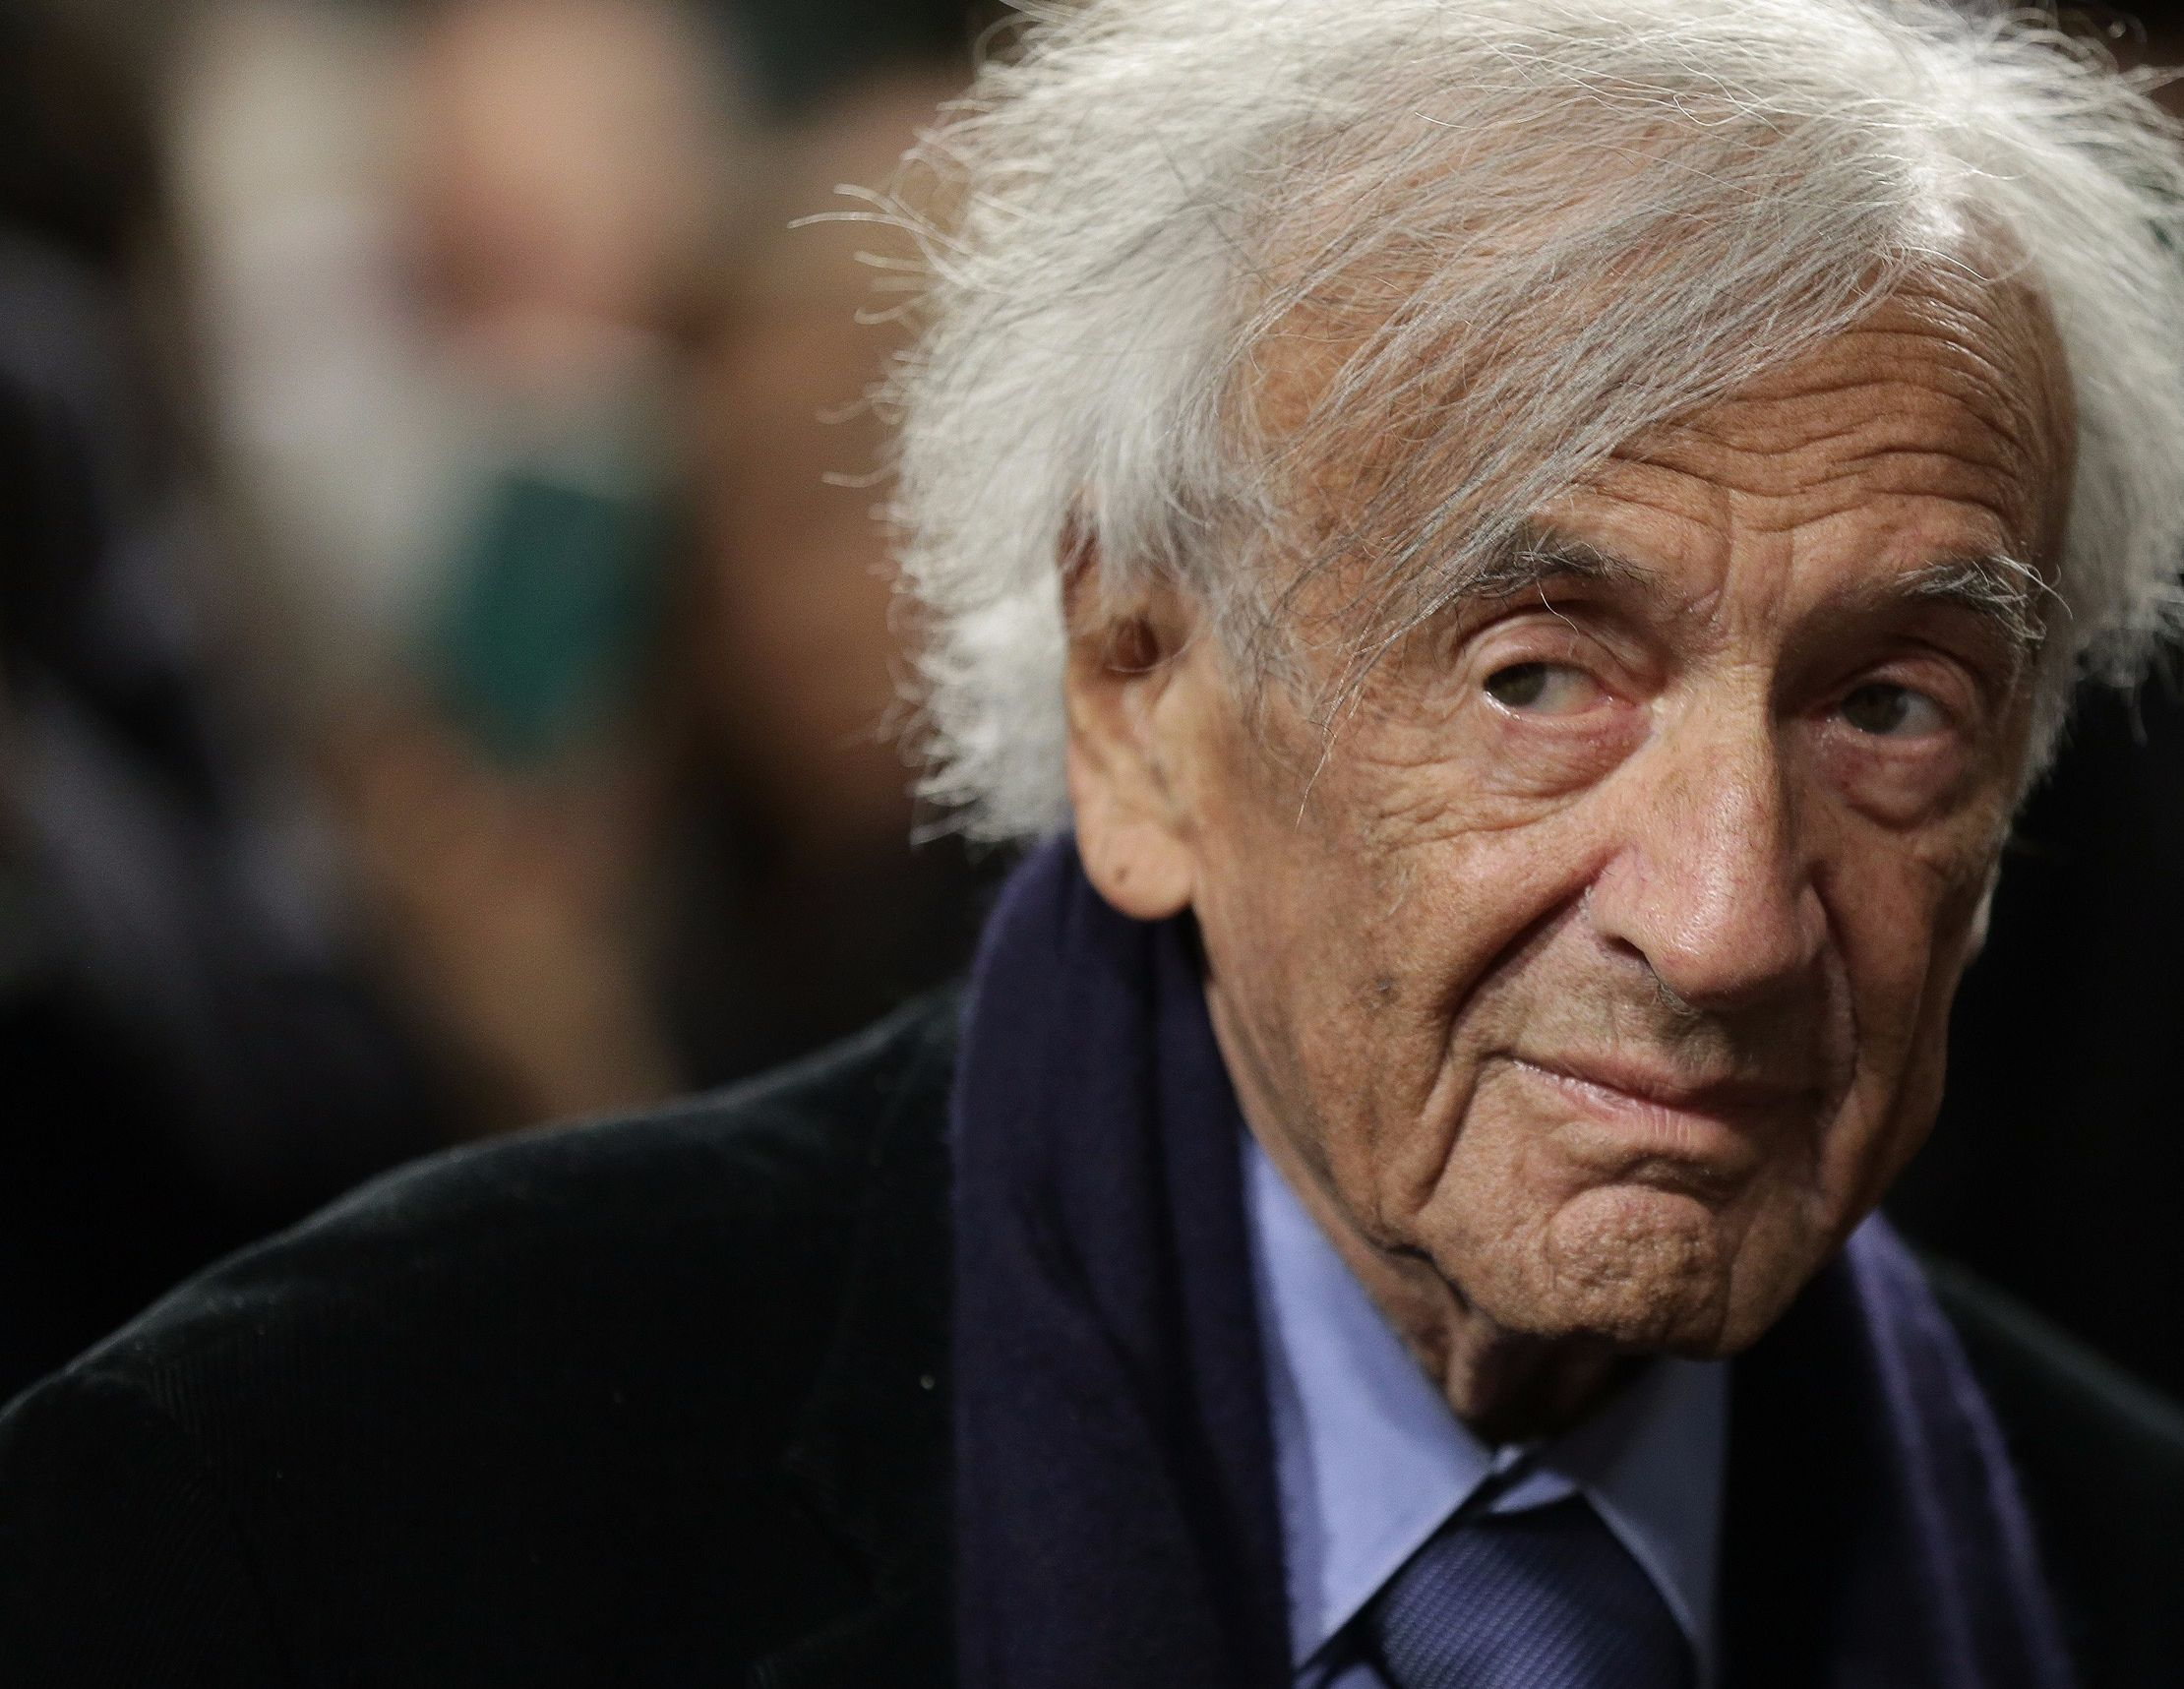 elie wiesel s legacy in 5 must essays from around the web 5 important essays on elie wiesel s legacy